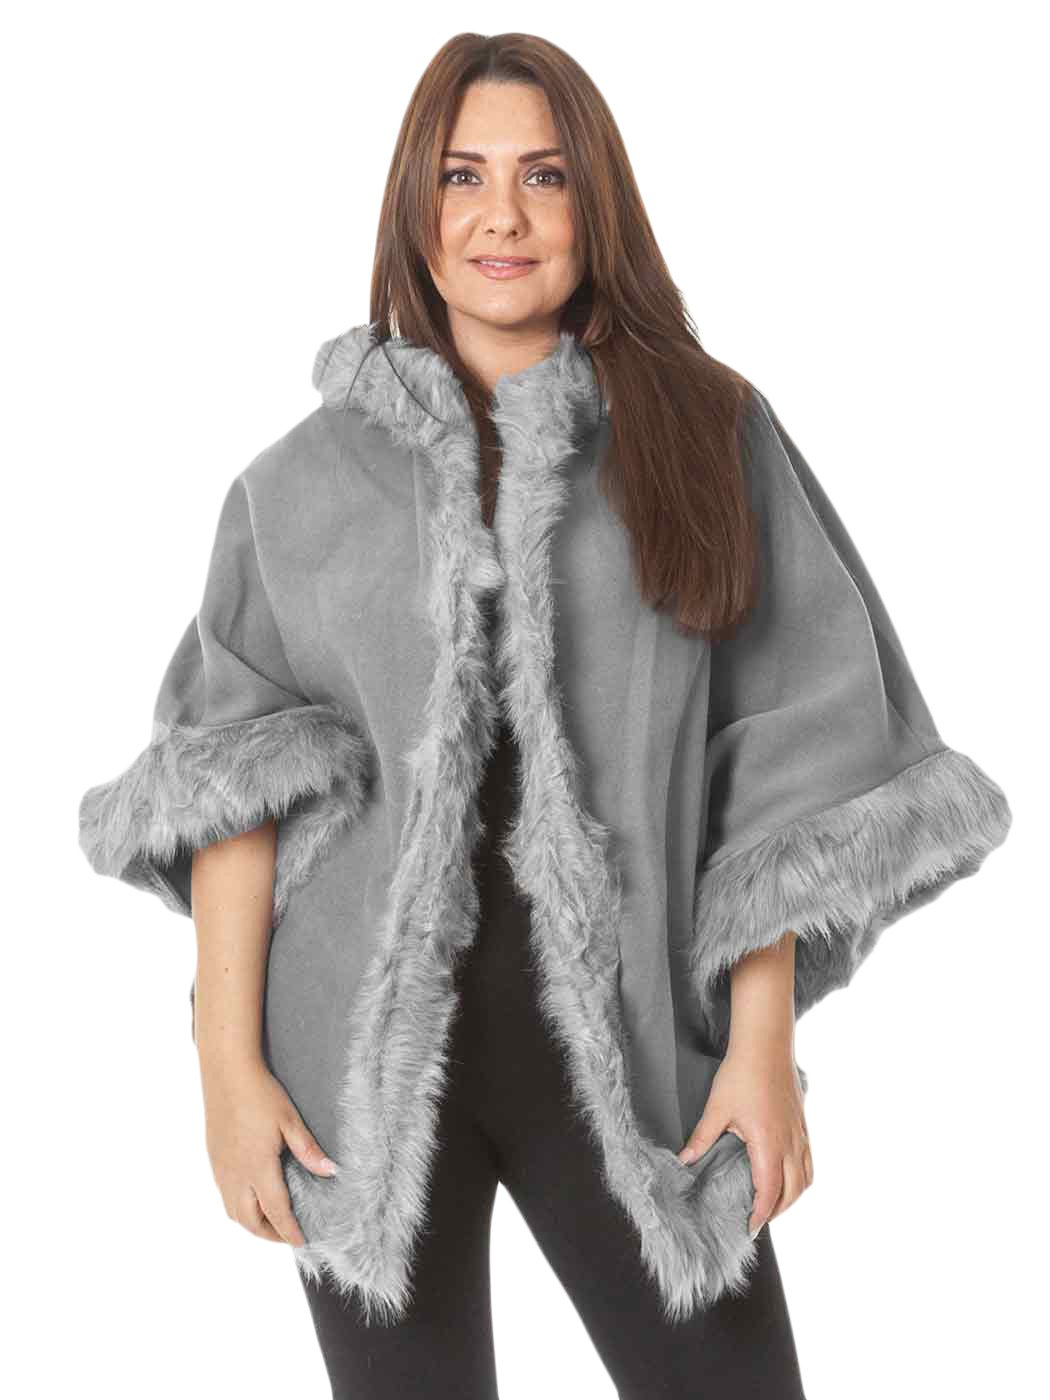 Womens Poncho Cape Cardigan Winter Wrap Wool Casual Jackets Fur Trim Hooded Warm